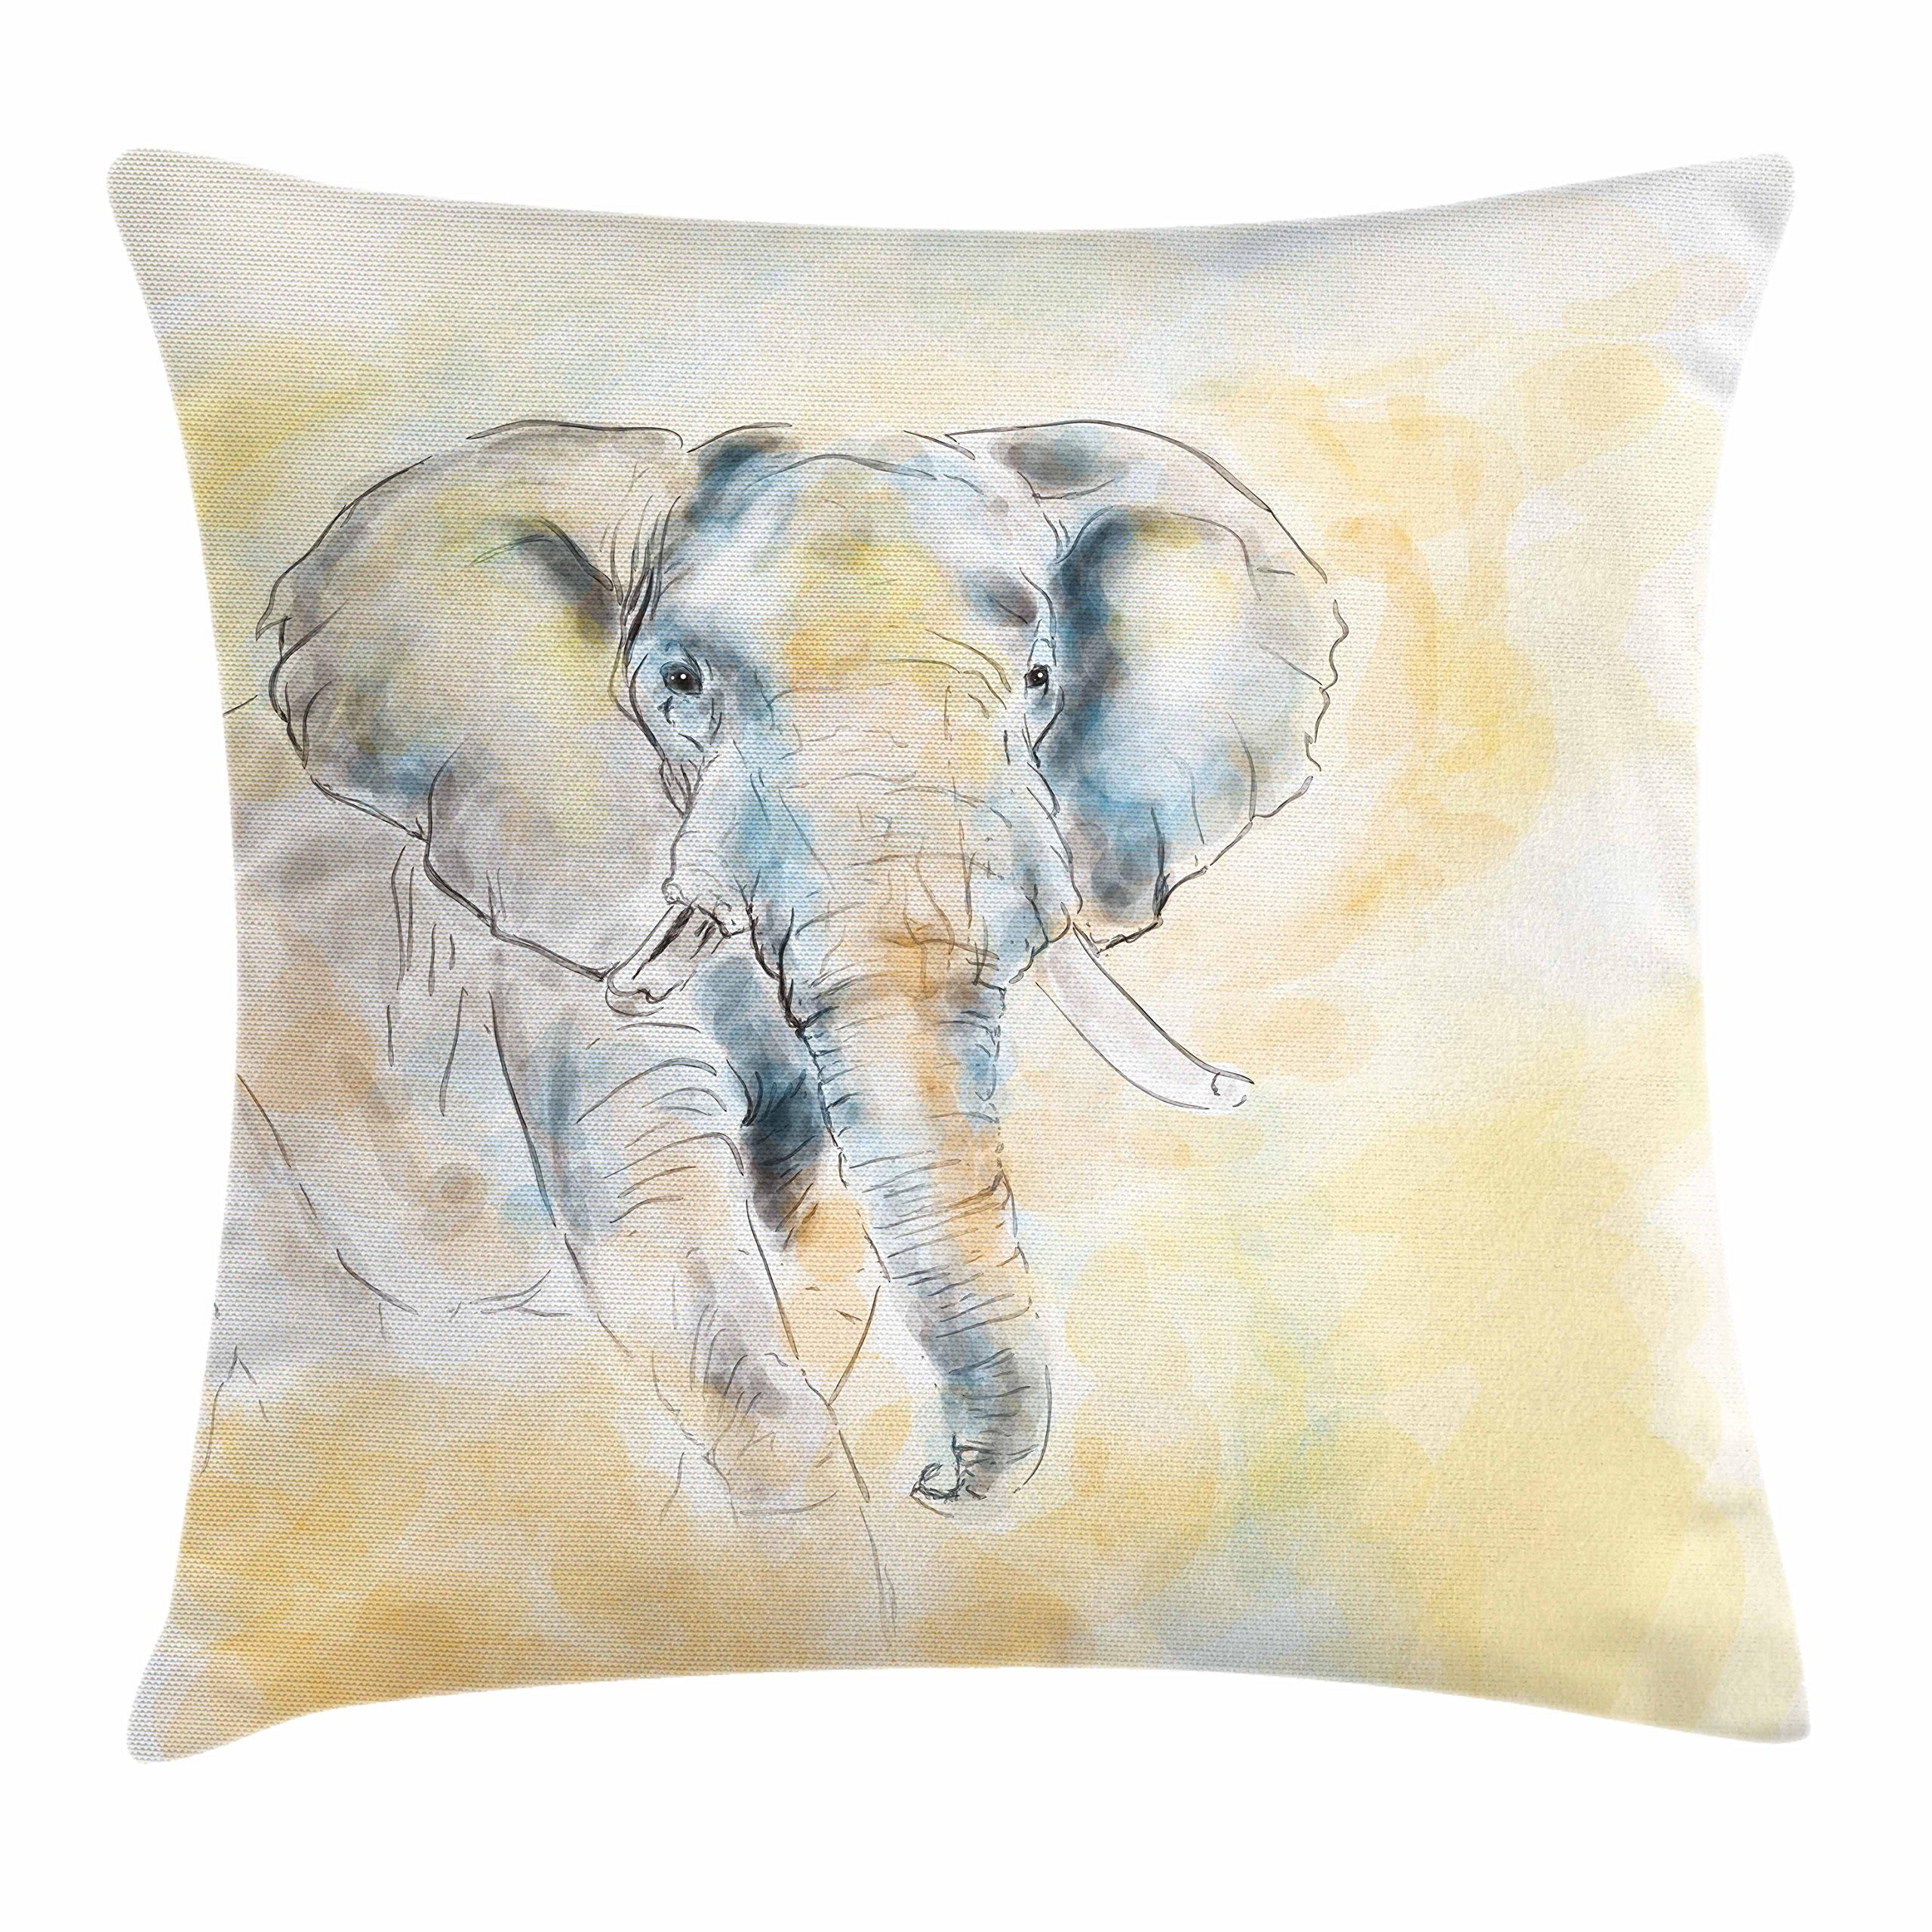 Ambesonne Animal Throw Pillow Cushion Cover, Elephant Watercolor Style Illustration Wild Creature Safari Exotic Wildlife Decor, Decorative Square Accent Pillow Case, 16 X 16 Inches, Cream Grey